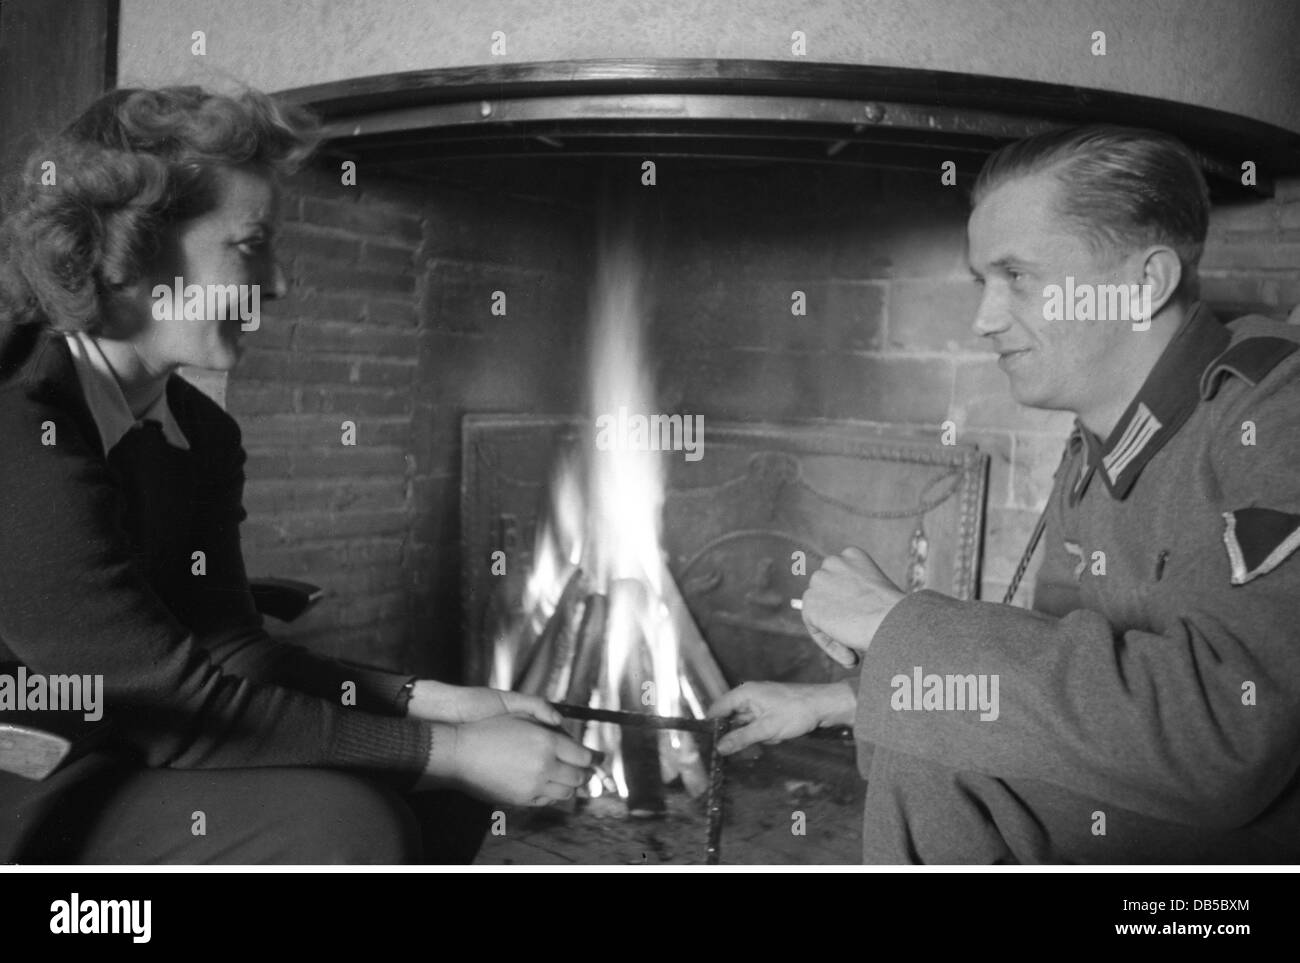 events, Second World War / WWII, Germany, Wehrmacht soldier with a woman in front of a fireplace, circa 1941, Additional - Stock Image